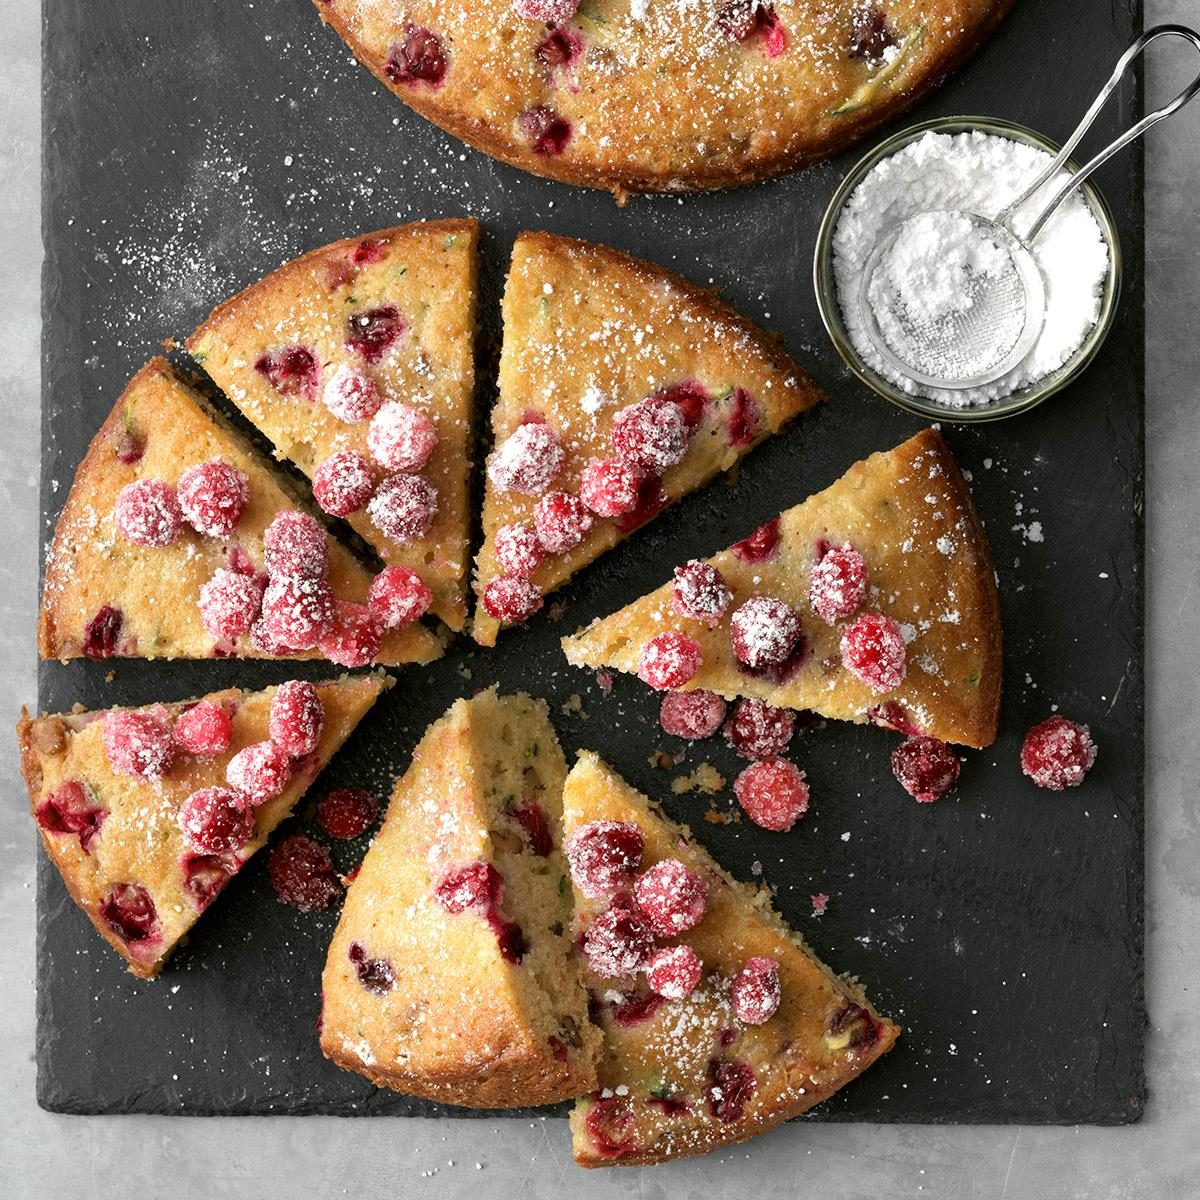 100 Baking Recipes to Help You Relax and Destress